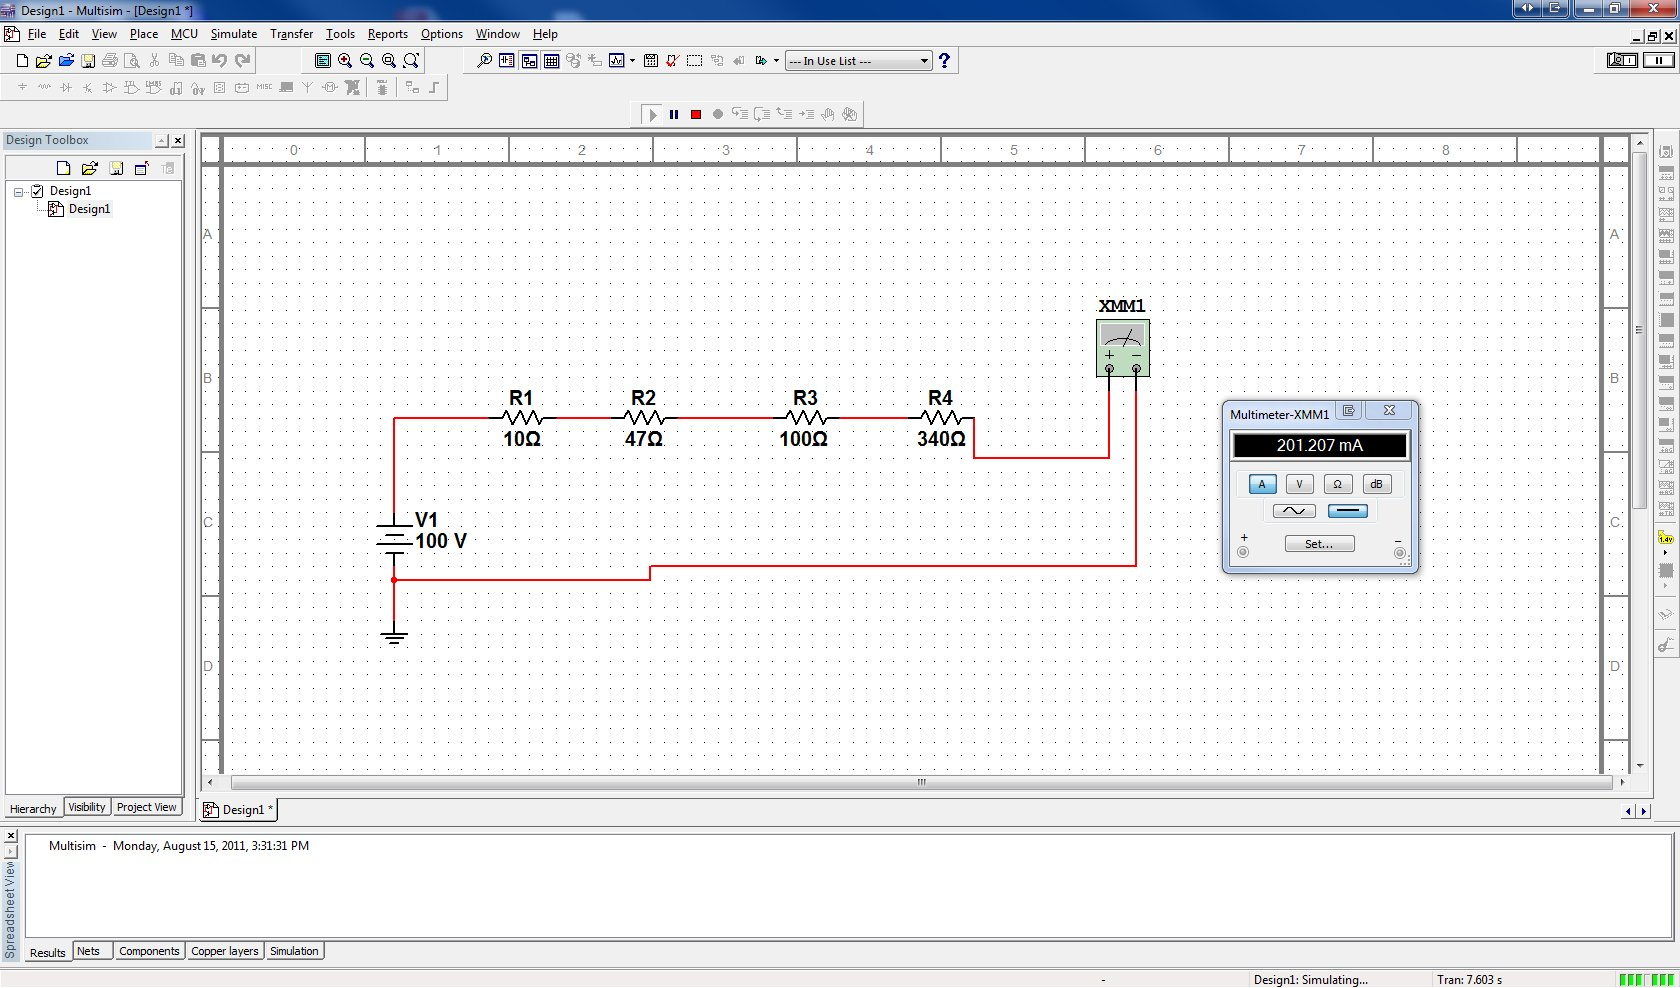 How Do I Set An Amperage Value Of 200ma In The Design Of A Circuit - Ni Community